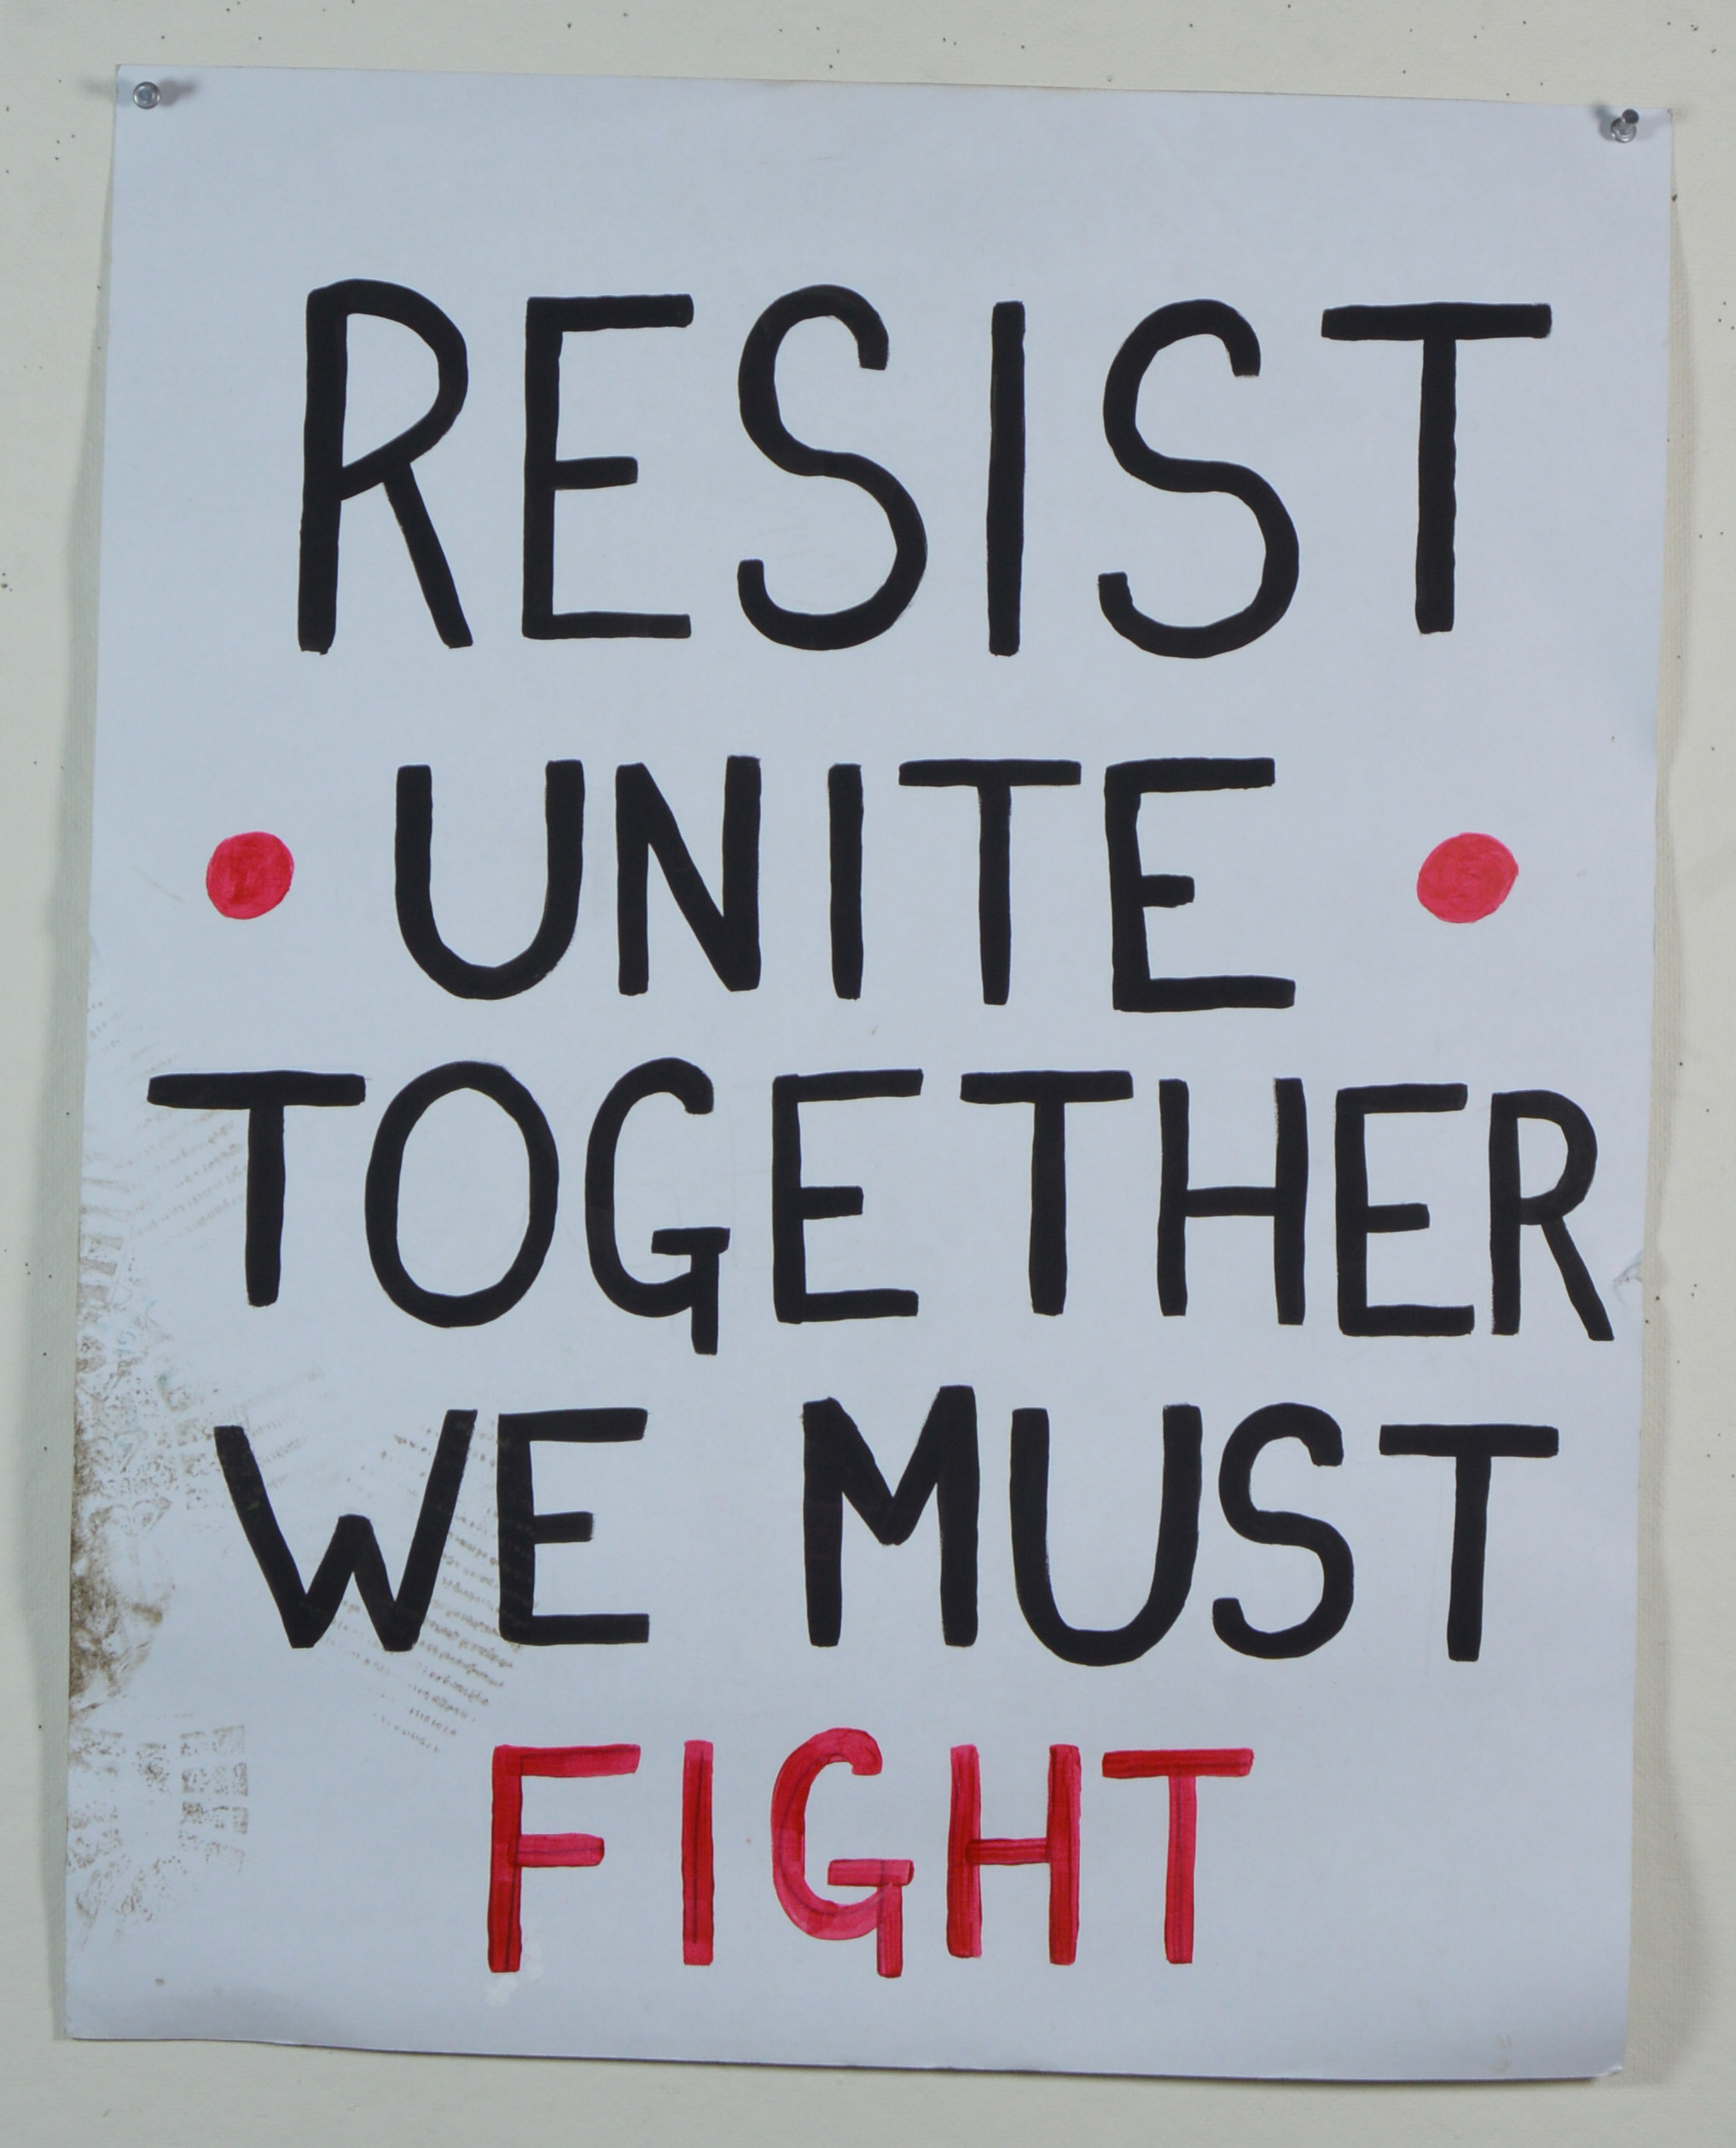 'Resist Unite Together We Must Fight', a poster created for the Boston Women's March in 2017.